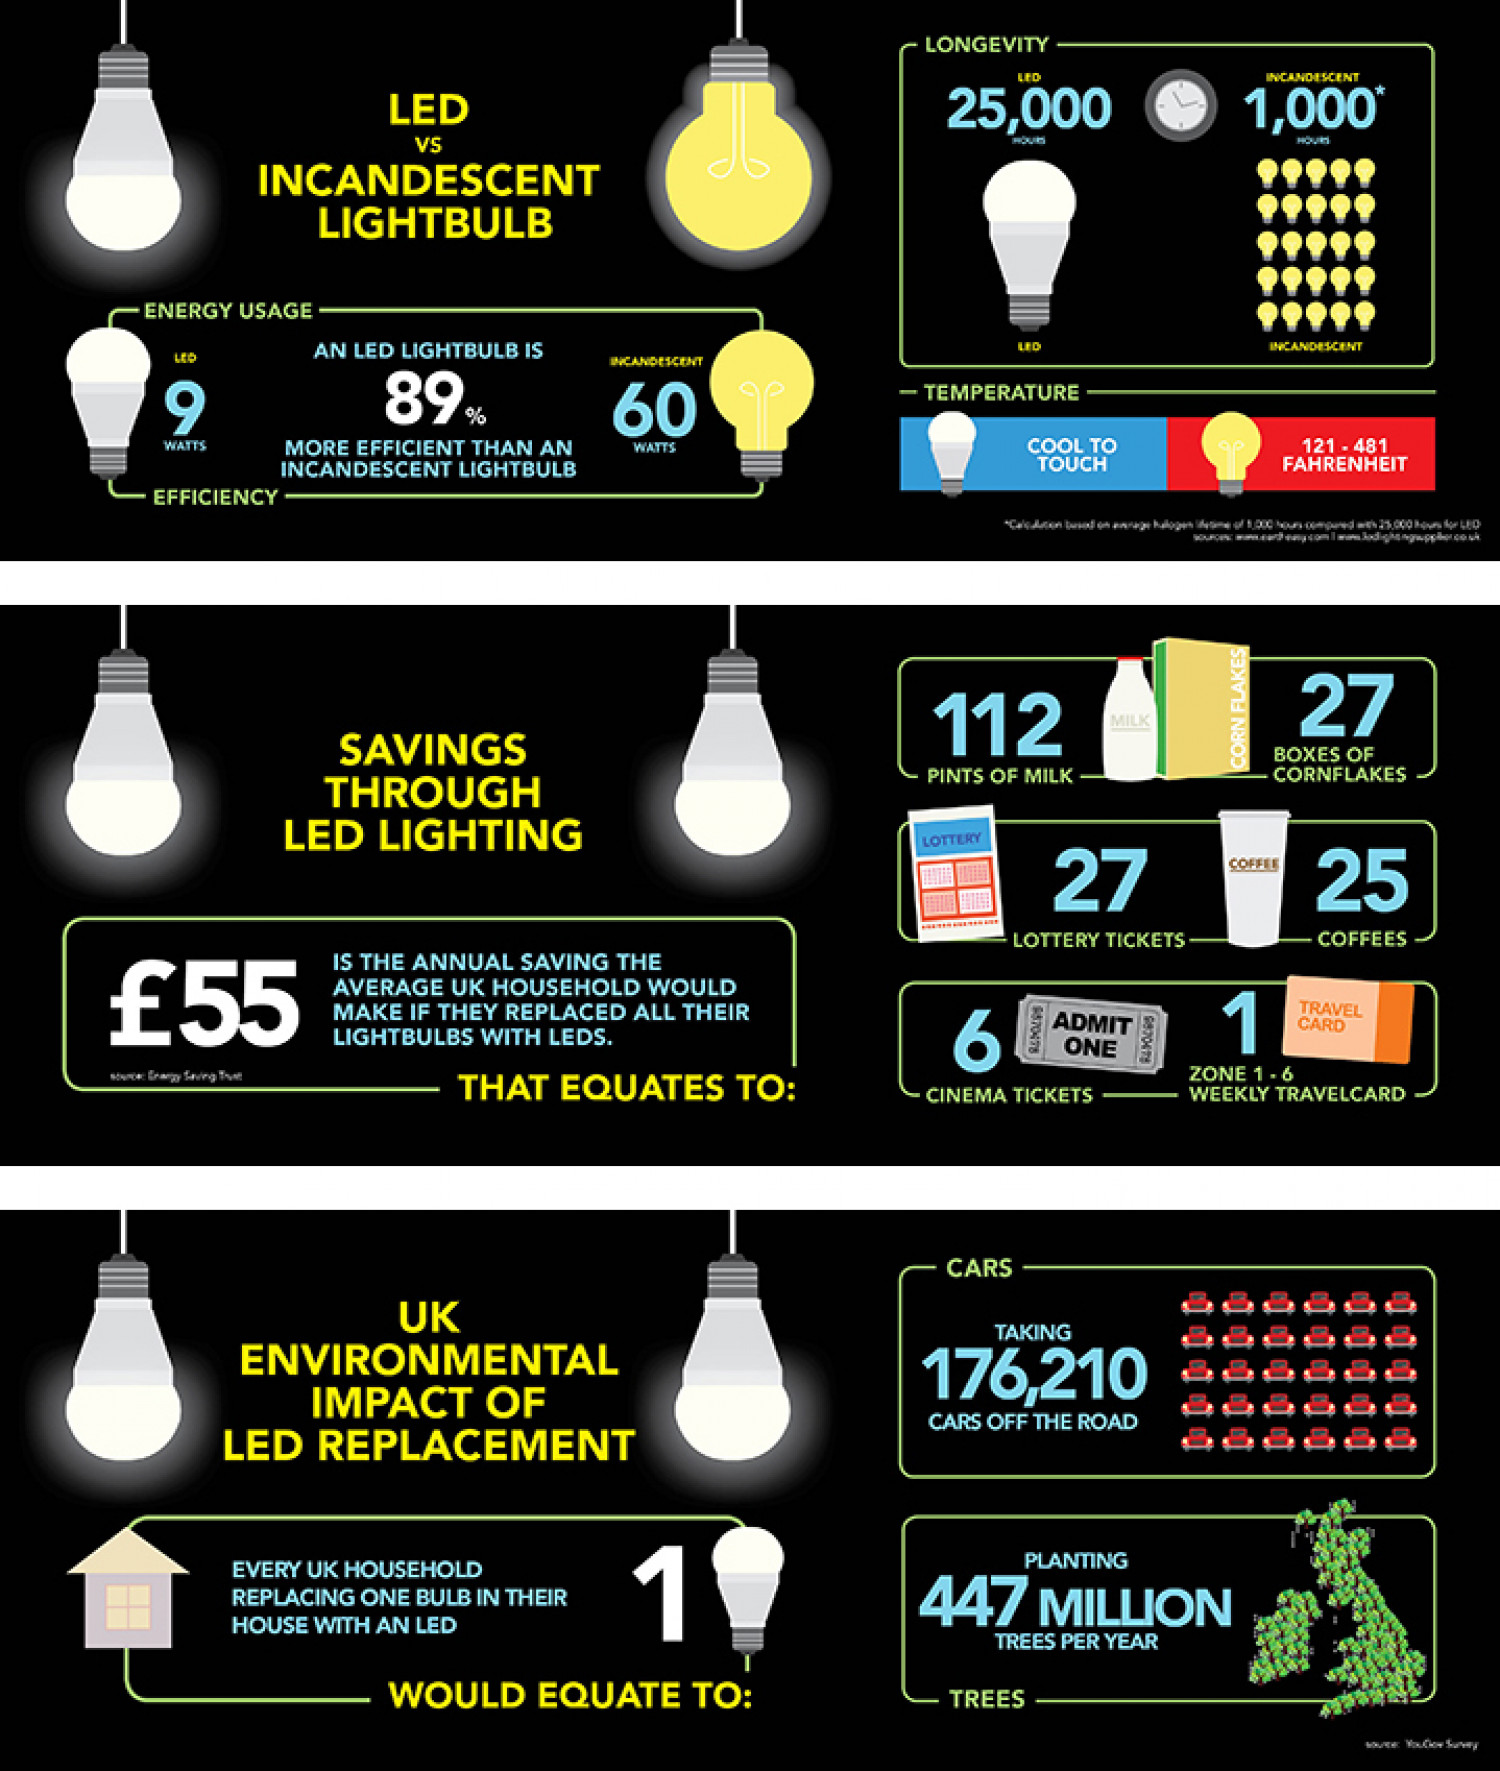 led-lights-infographic_514c8d6f46e54_w15